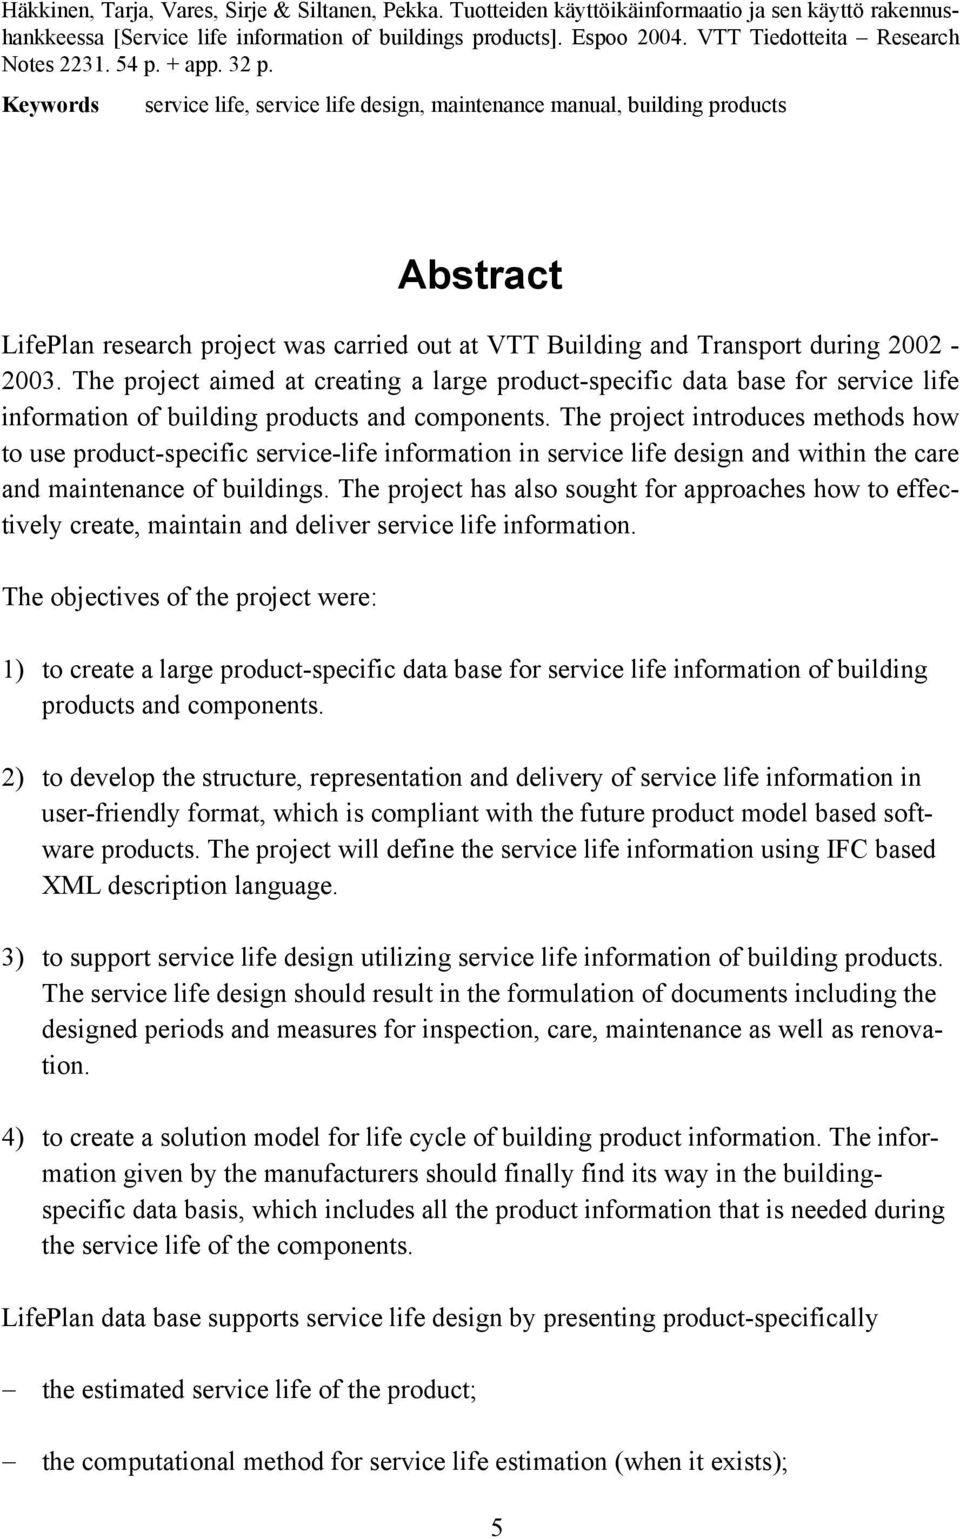 Keywords service life, service life design, maintenance manual, building products Abstract LifePlan research project was carried out at VTT Building and Transport during 2002-2003.